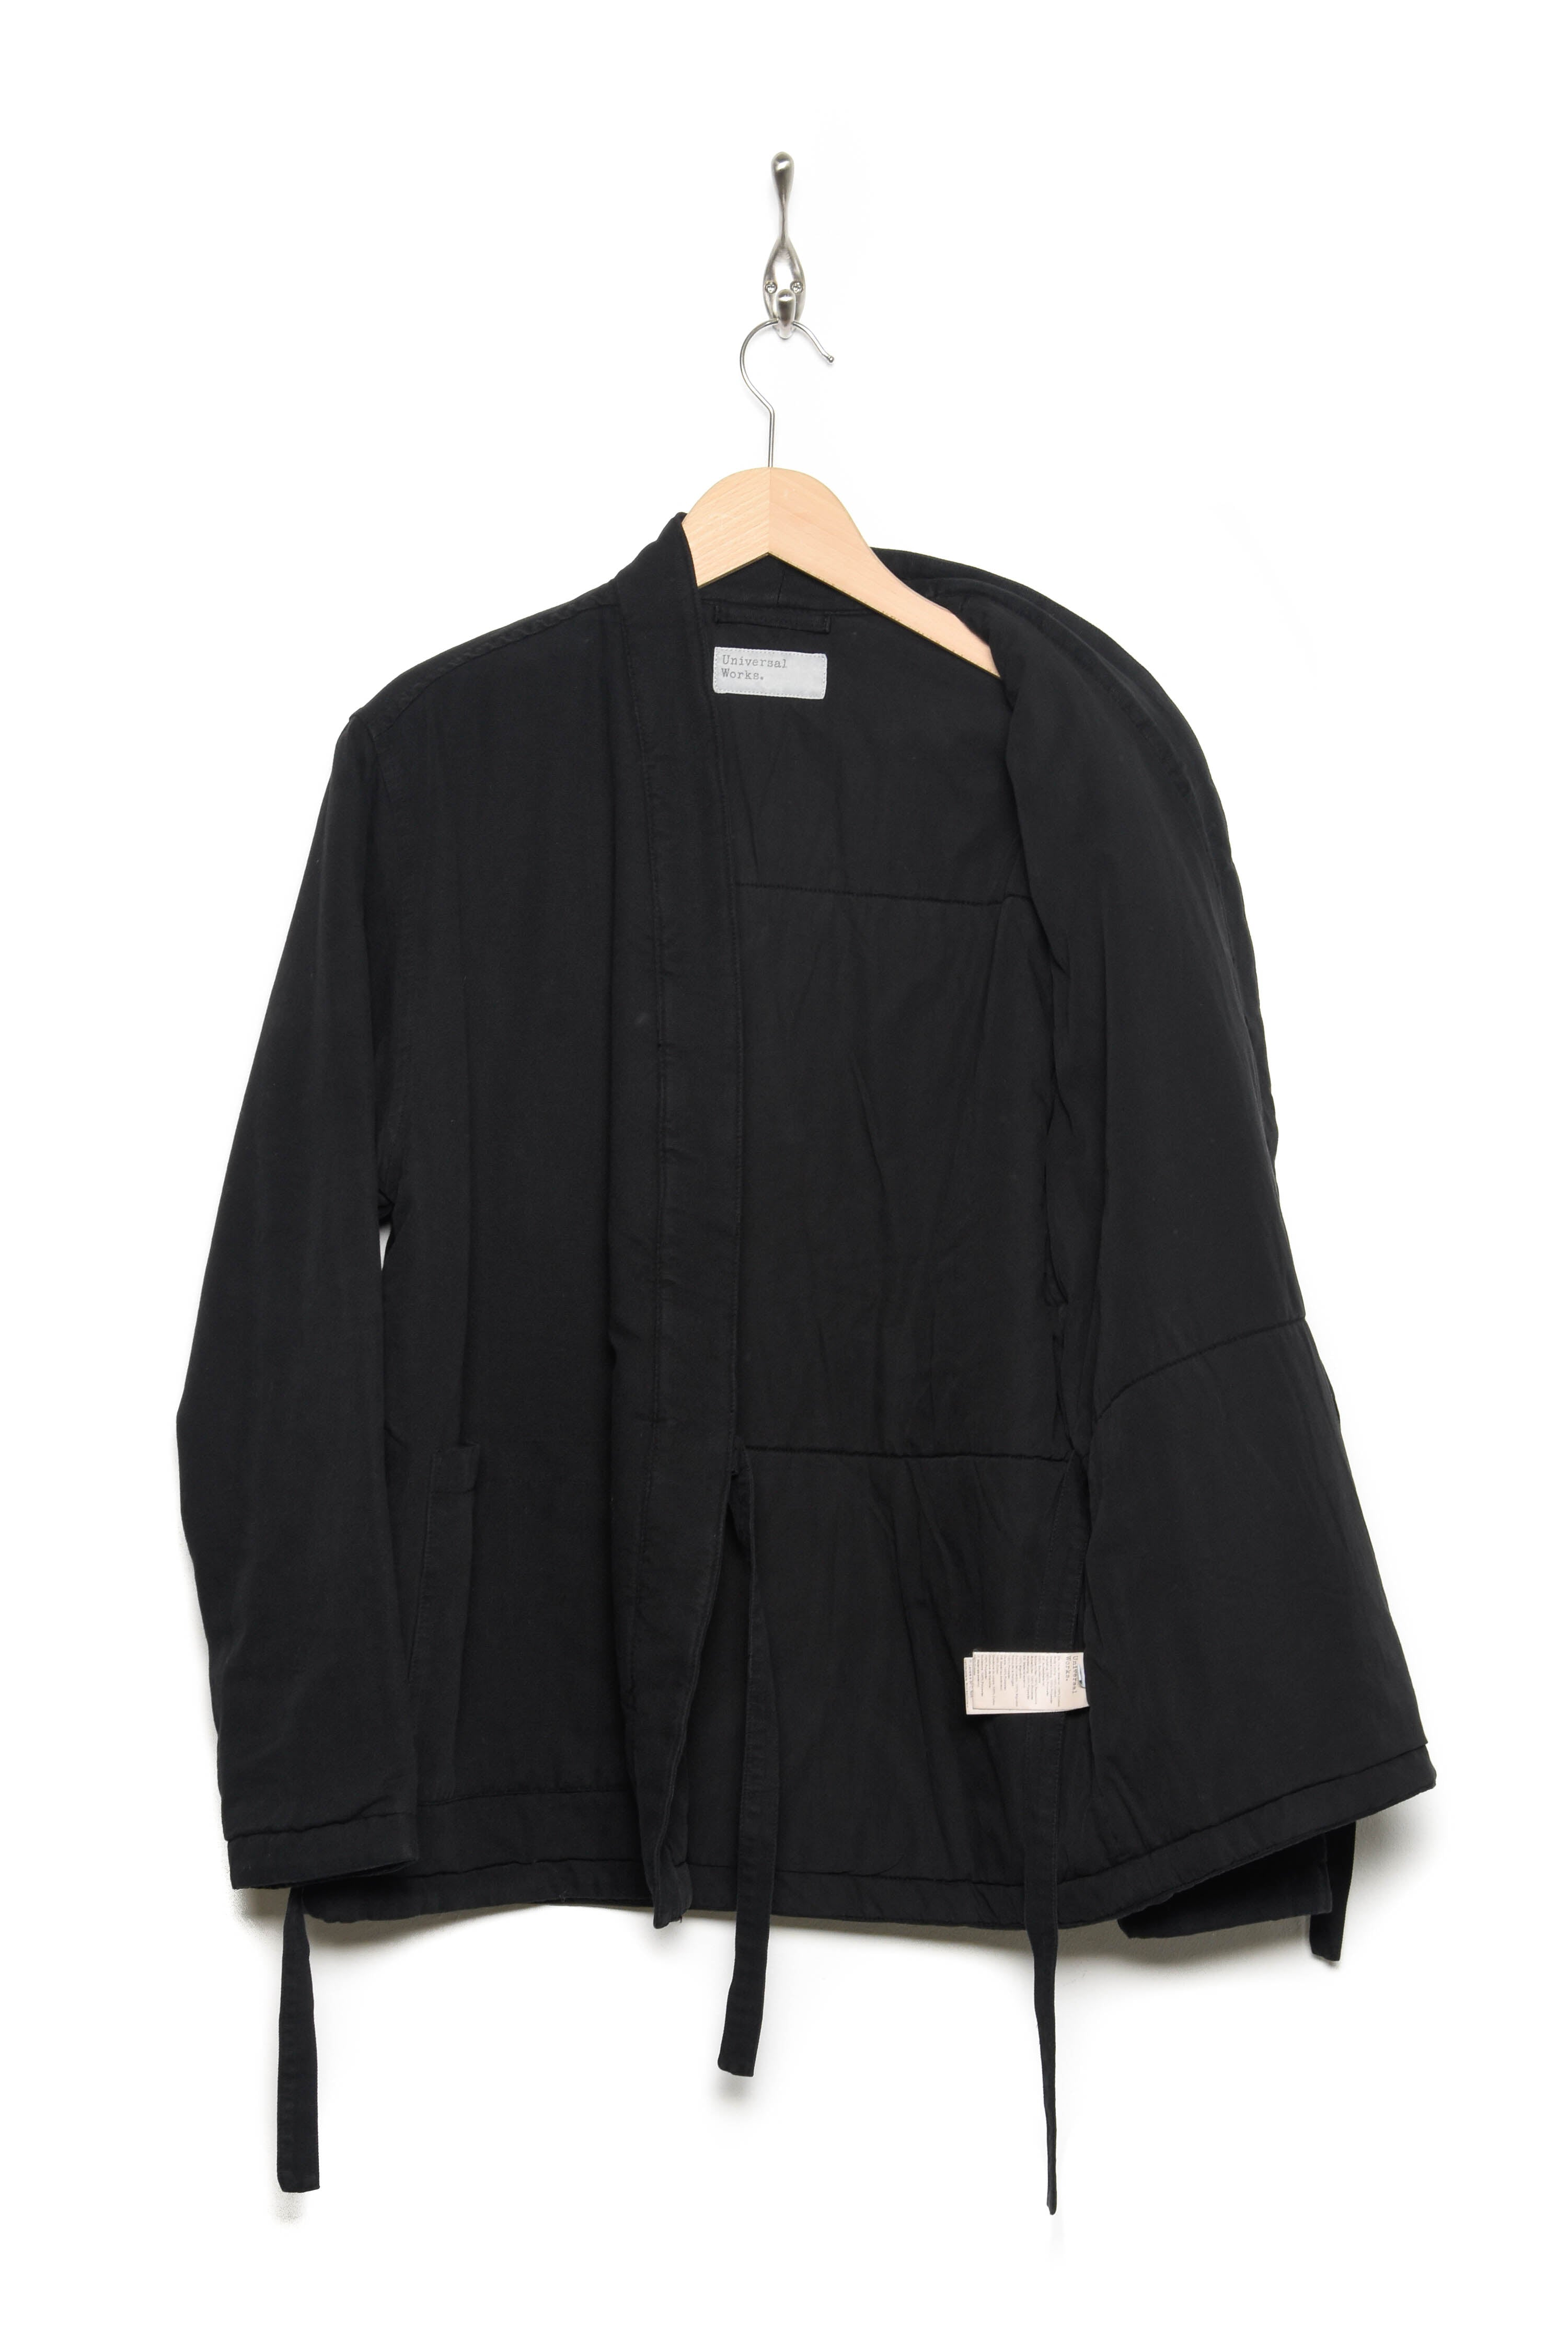 Insulated Kyoto Work Jacket 23552 black